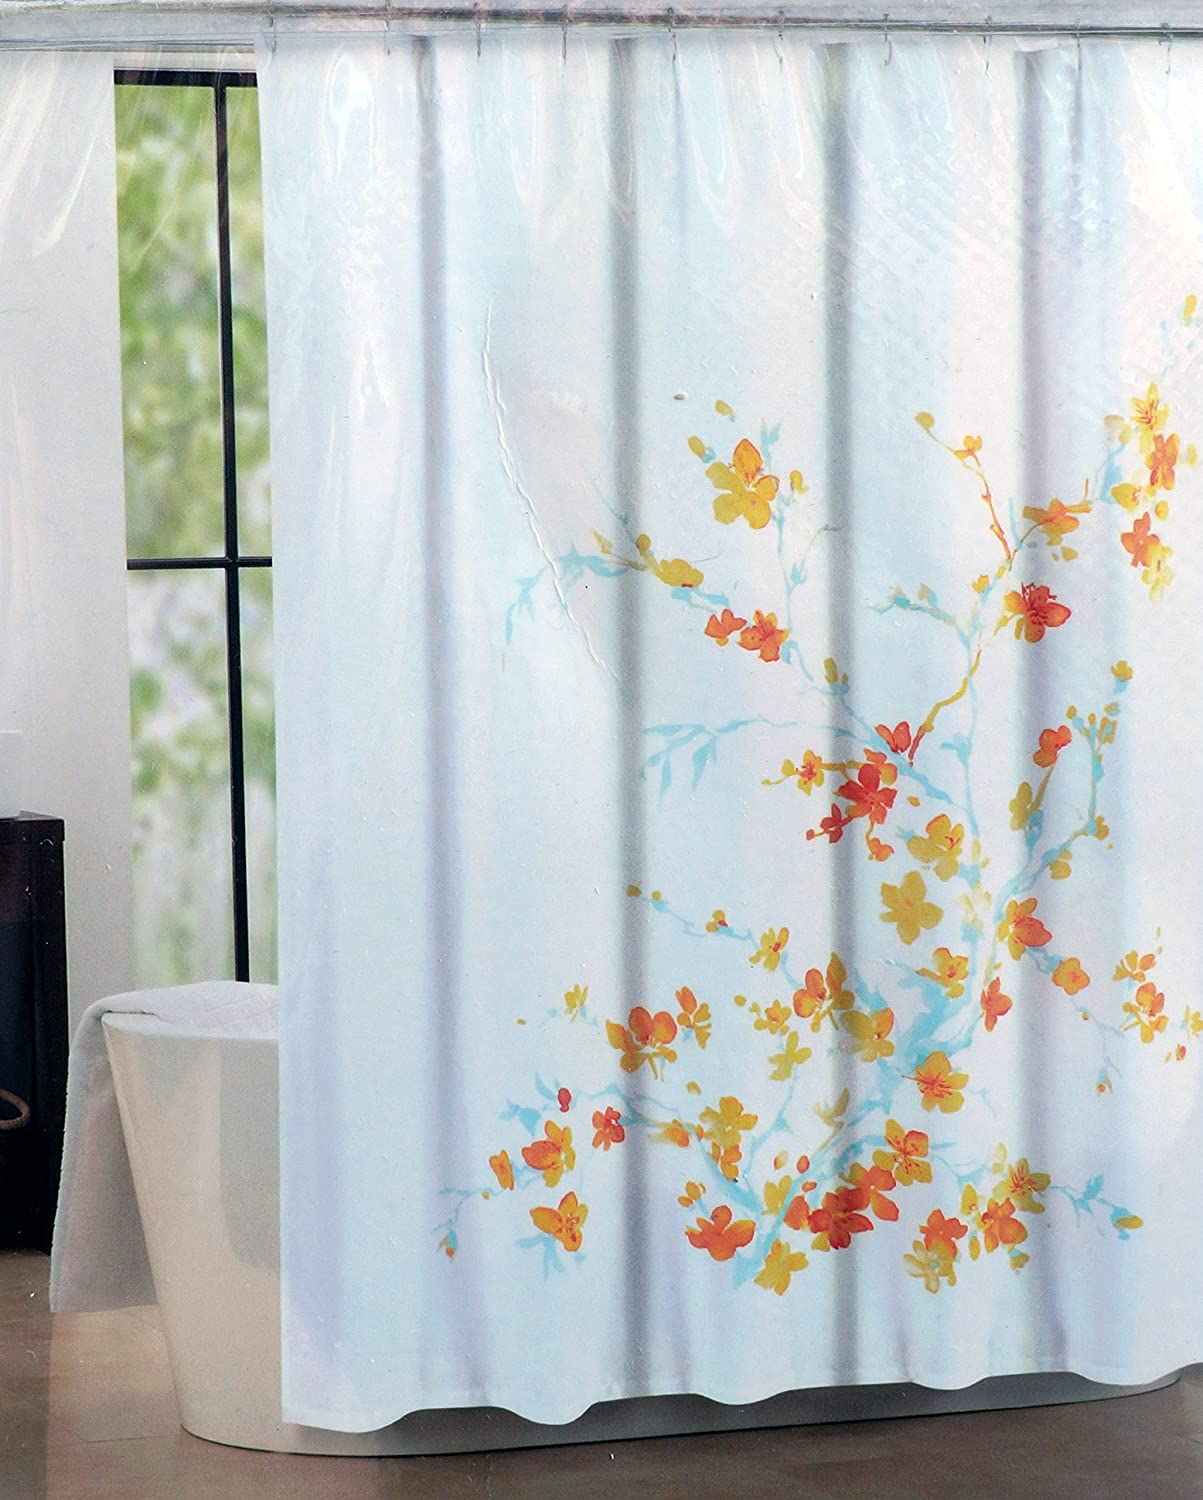 Tahari Fabric Shower Curtain Blue, Orange, Yellow Printemps by Tahari Home